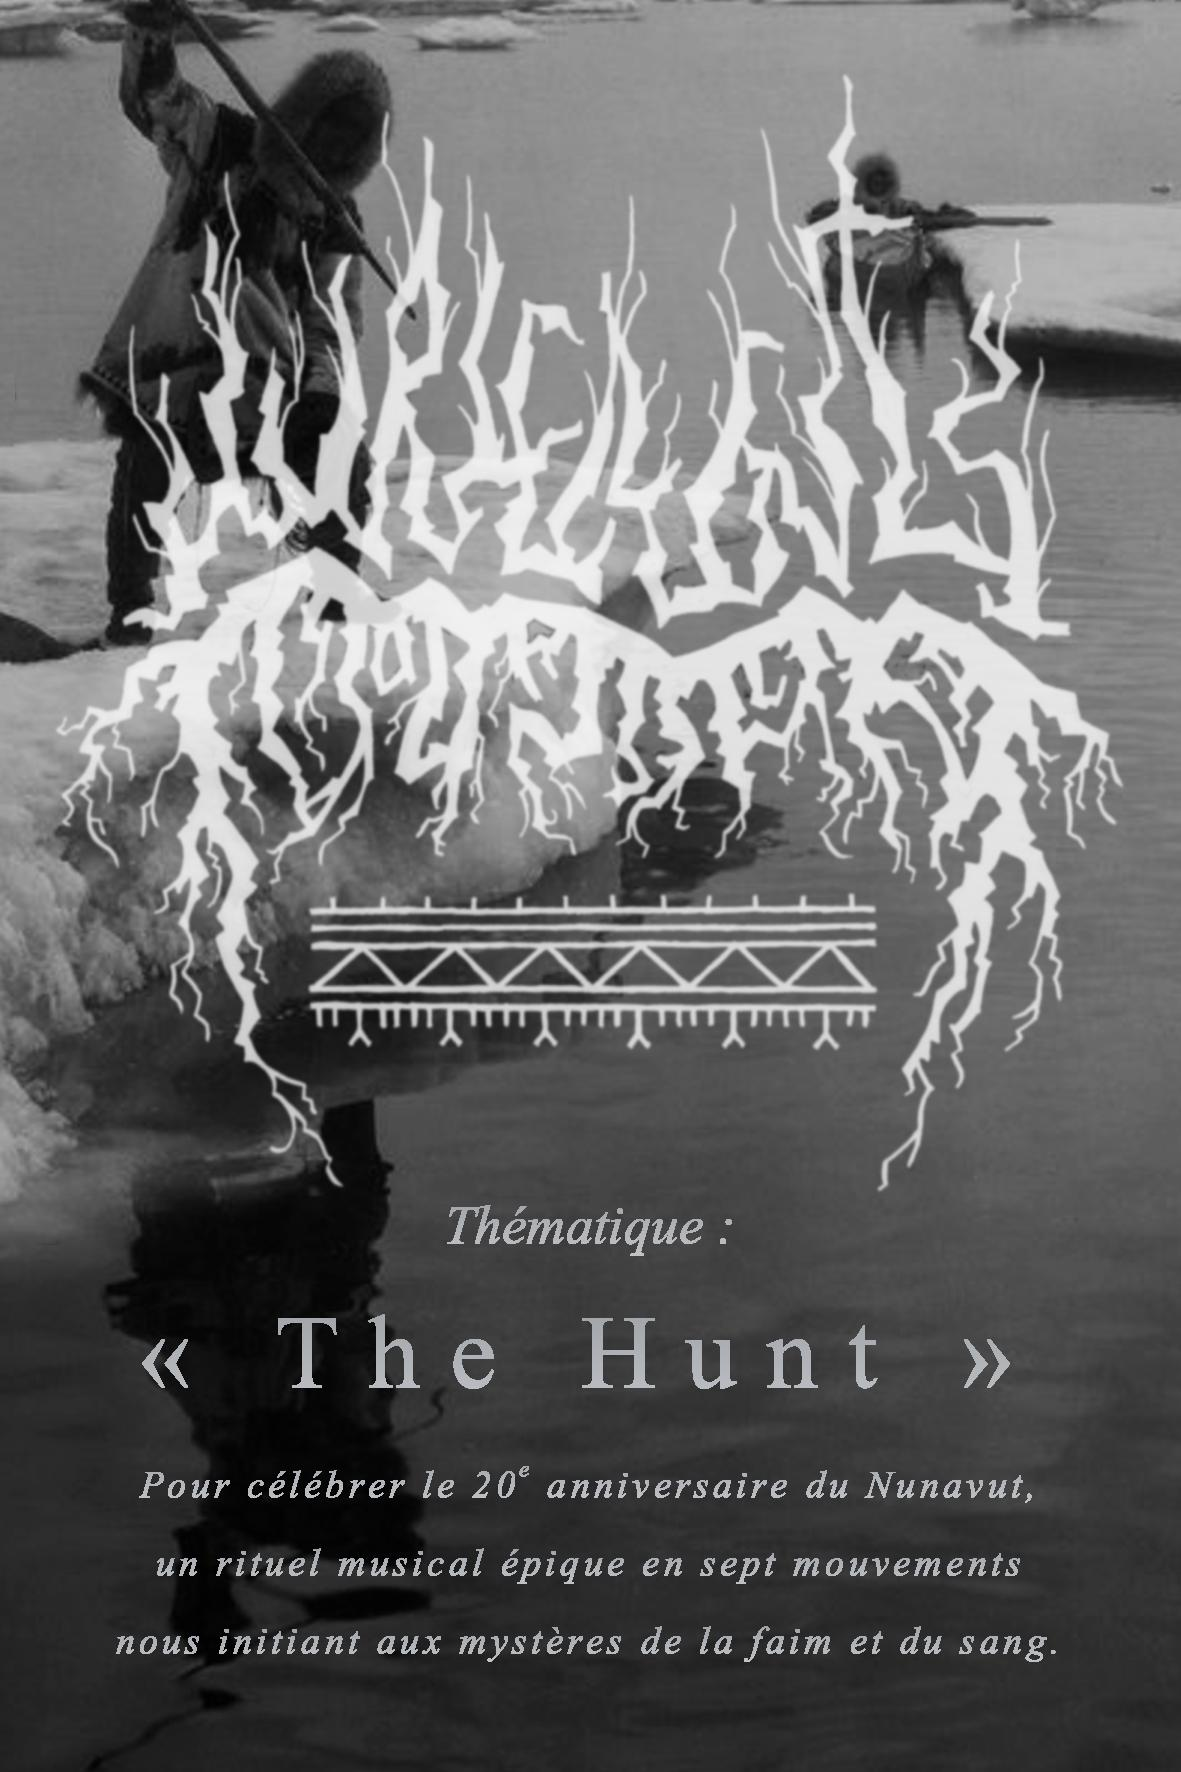 THE HUNT épisodes_promos_hurlements.jpg